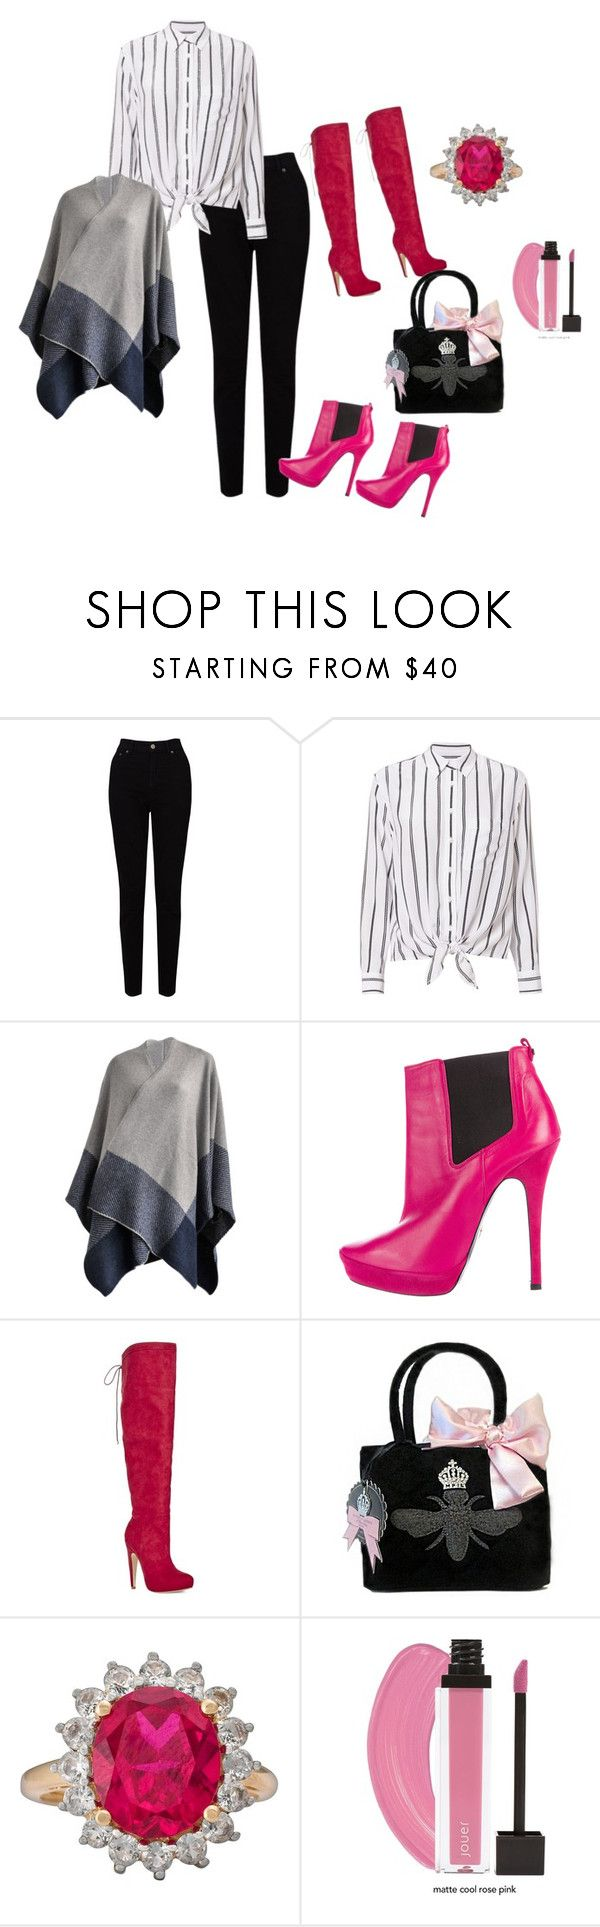 """яркая обувь"" by anna-esenova on Polyvore featuring moda, EAST, Equipment, Burberry, Cesare Paciotti, JustFab e My Flat In London"